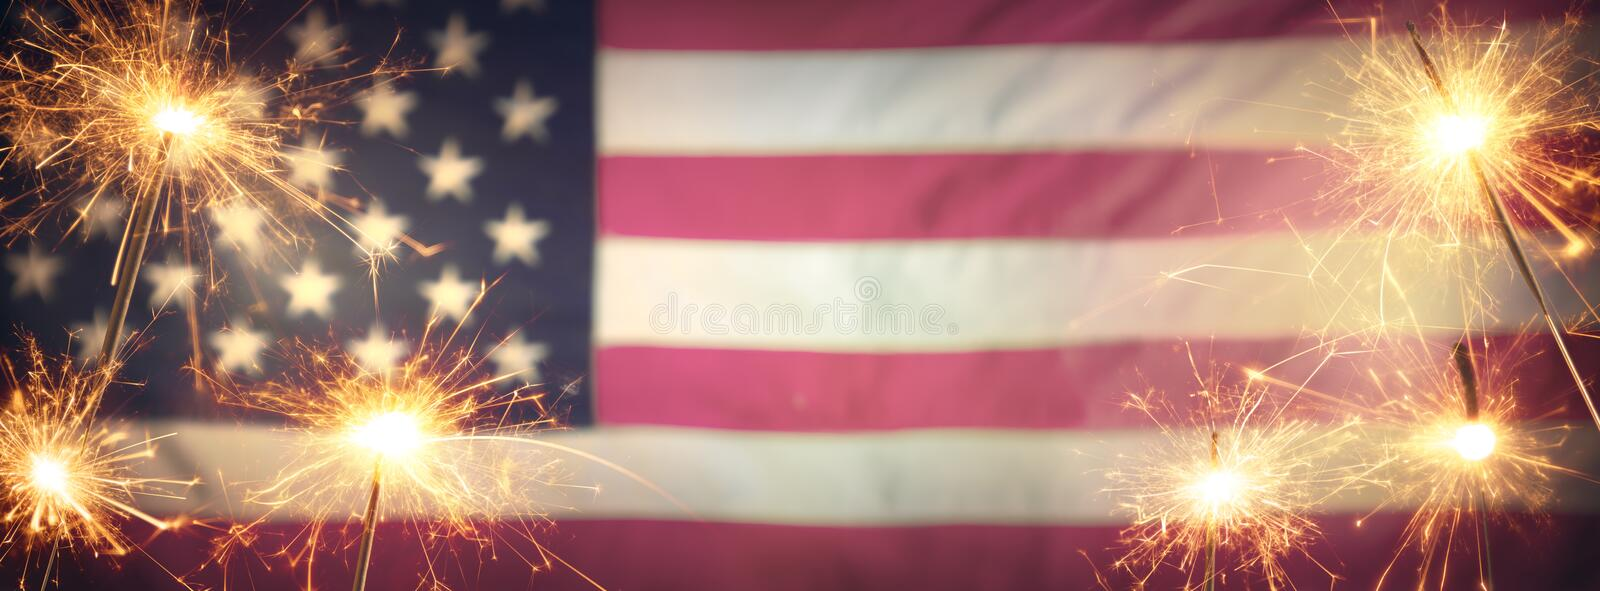 Vintage Celebration With Sparklers And Defocused American Flag stock images